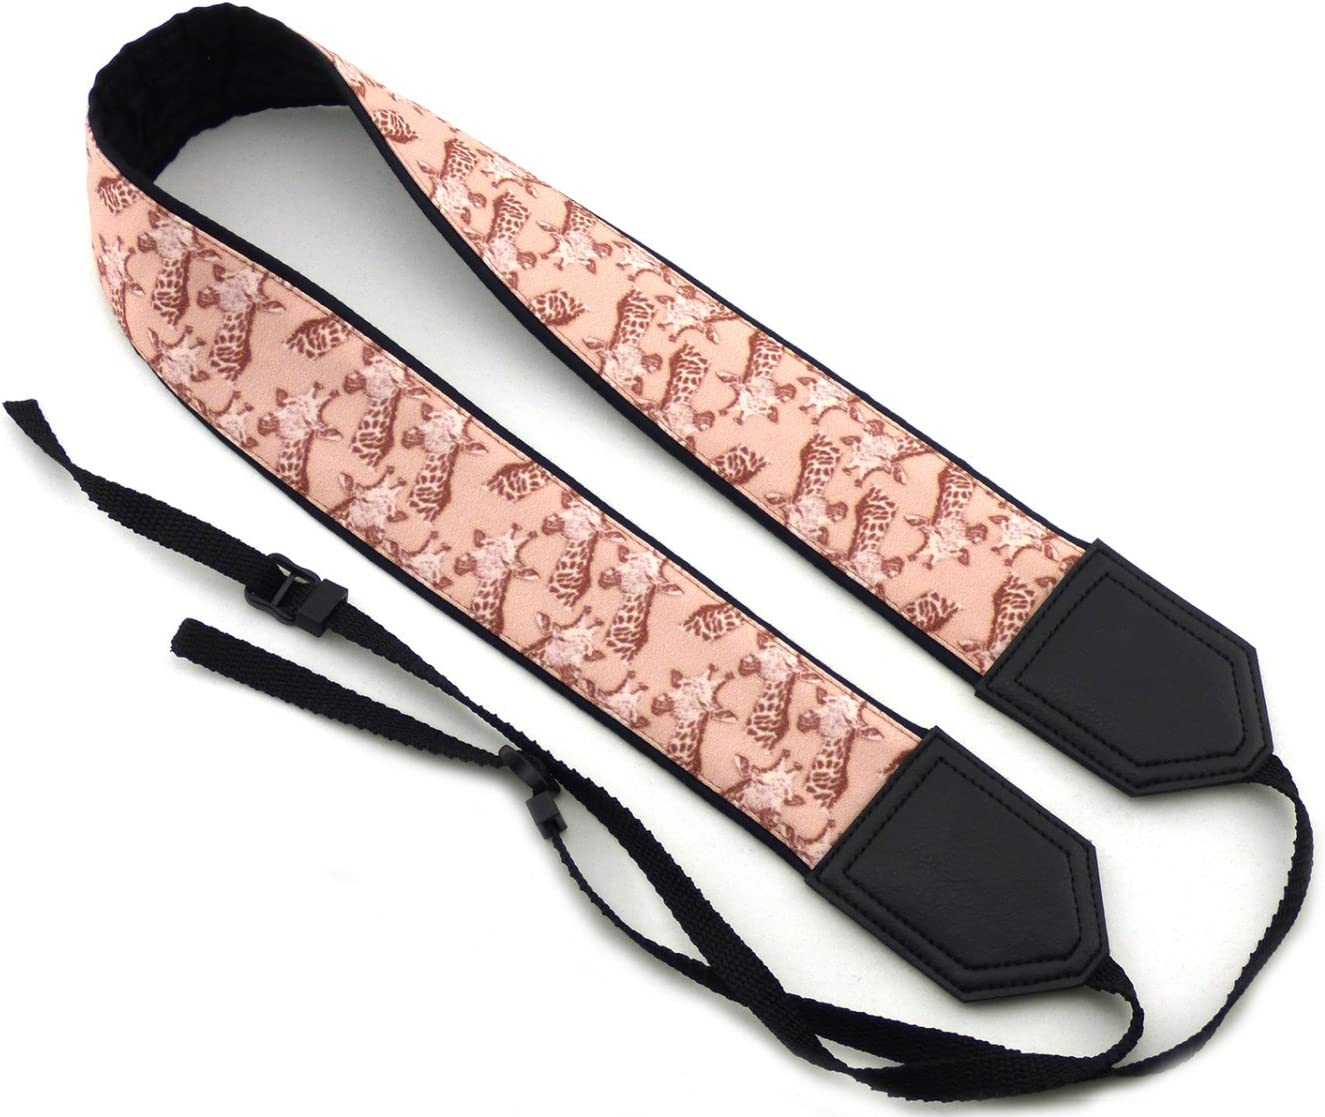 Camera Strap with Unique Animal Pattern Durable DSLR//SLR Neck Camera Strap InTePro Giraffe Camera Strap Beige Camera Strap with Animal Design Lightweight and wellpadded Gift for Animals Lovers